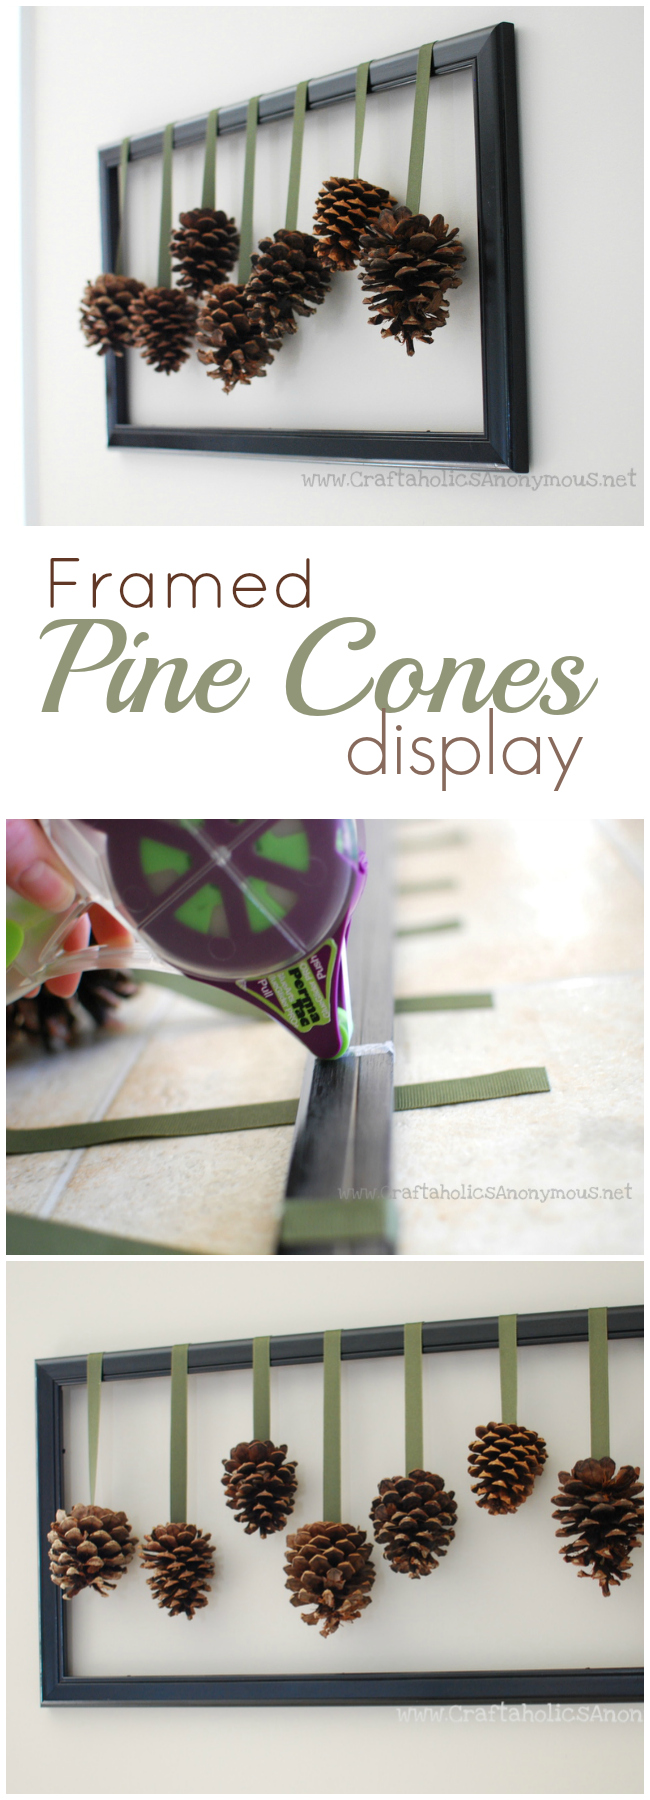 framed pine cones display. Great way to use those pine cones and create cheap home decor!